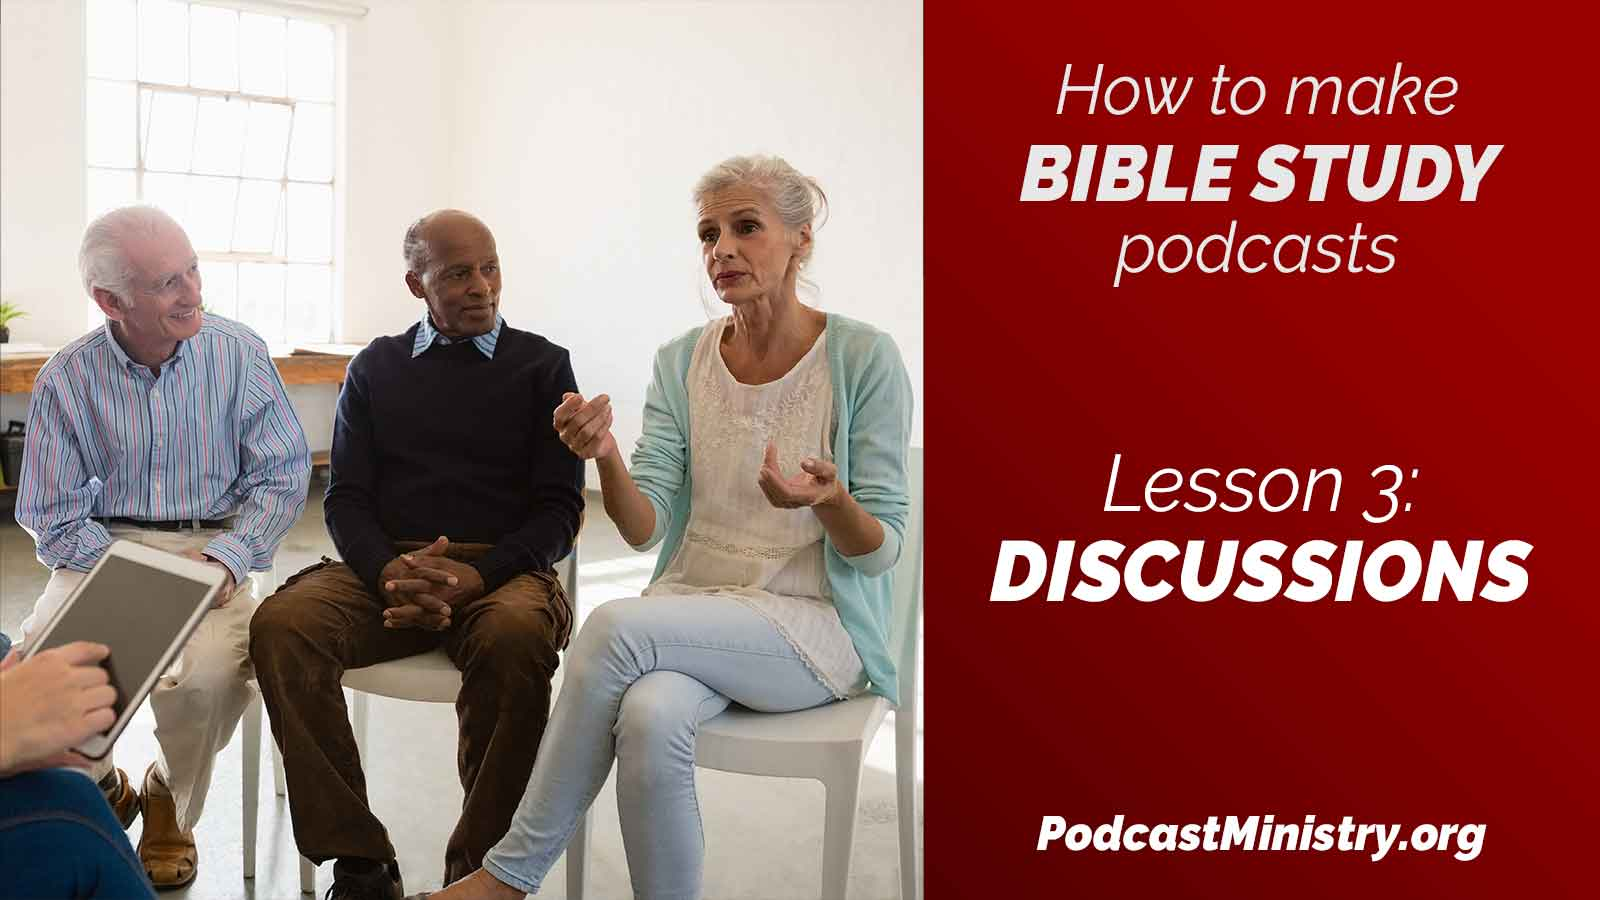 Lesson 3: How to make Bible study podcasts that are focused on discussions.